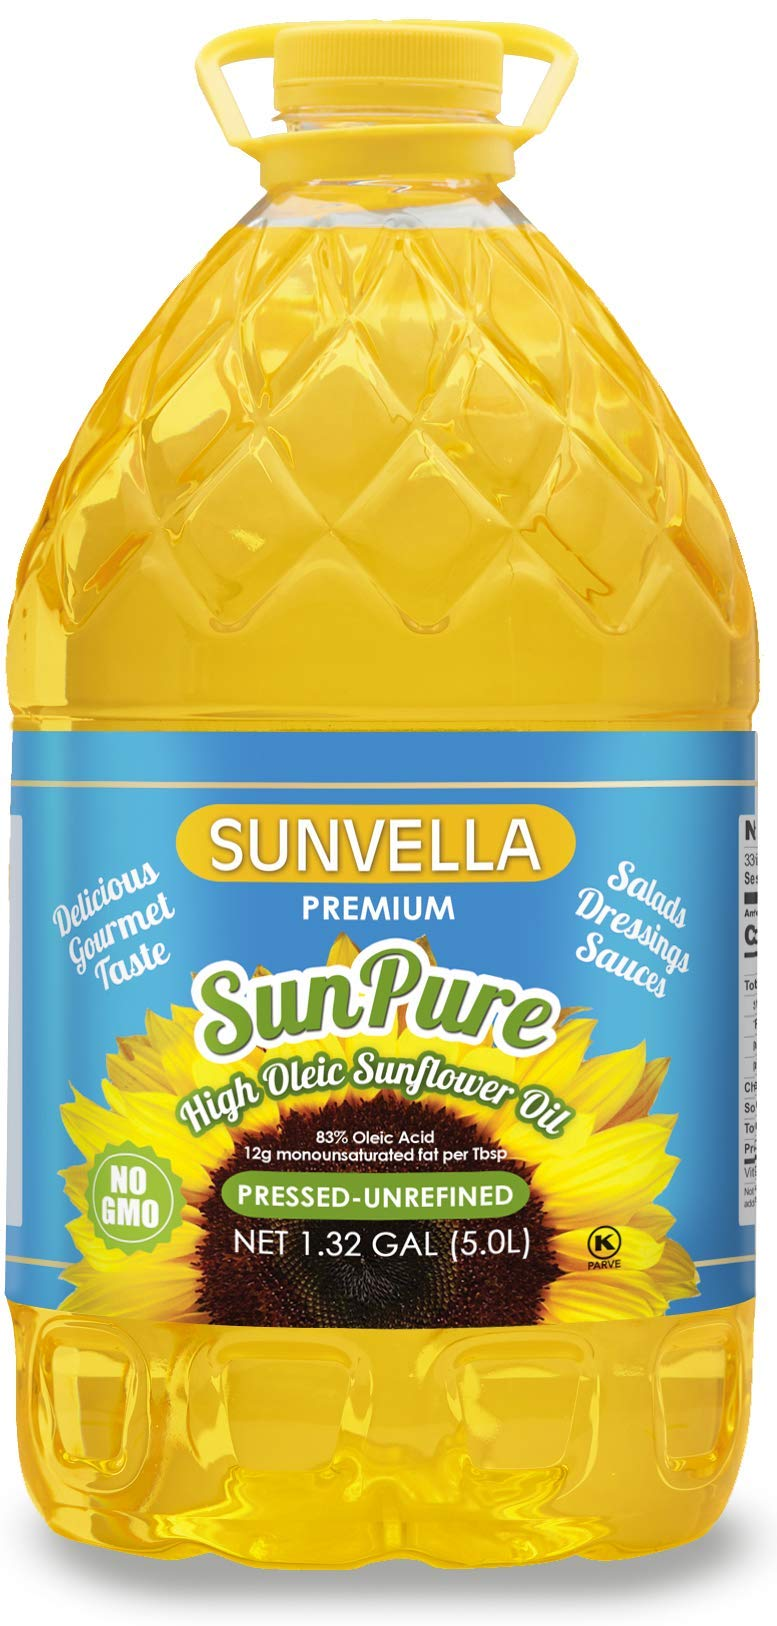 SUNVELLA SunPure Non-GMO High Oleic Sunflower Oil, Pressed-Unrefined 1.32 GAL (5.0L) by SUNVELLA